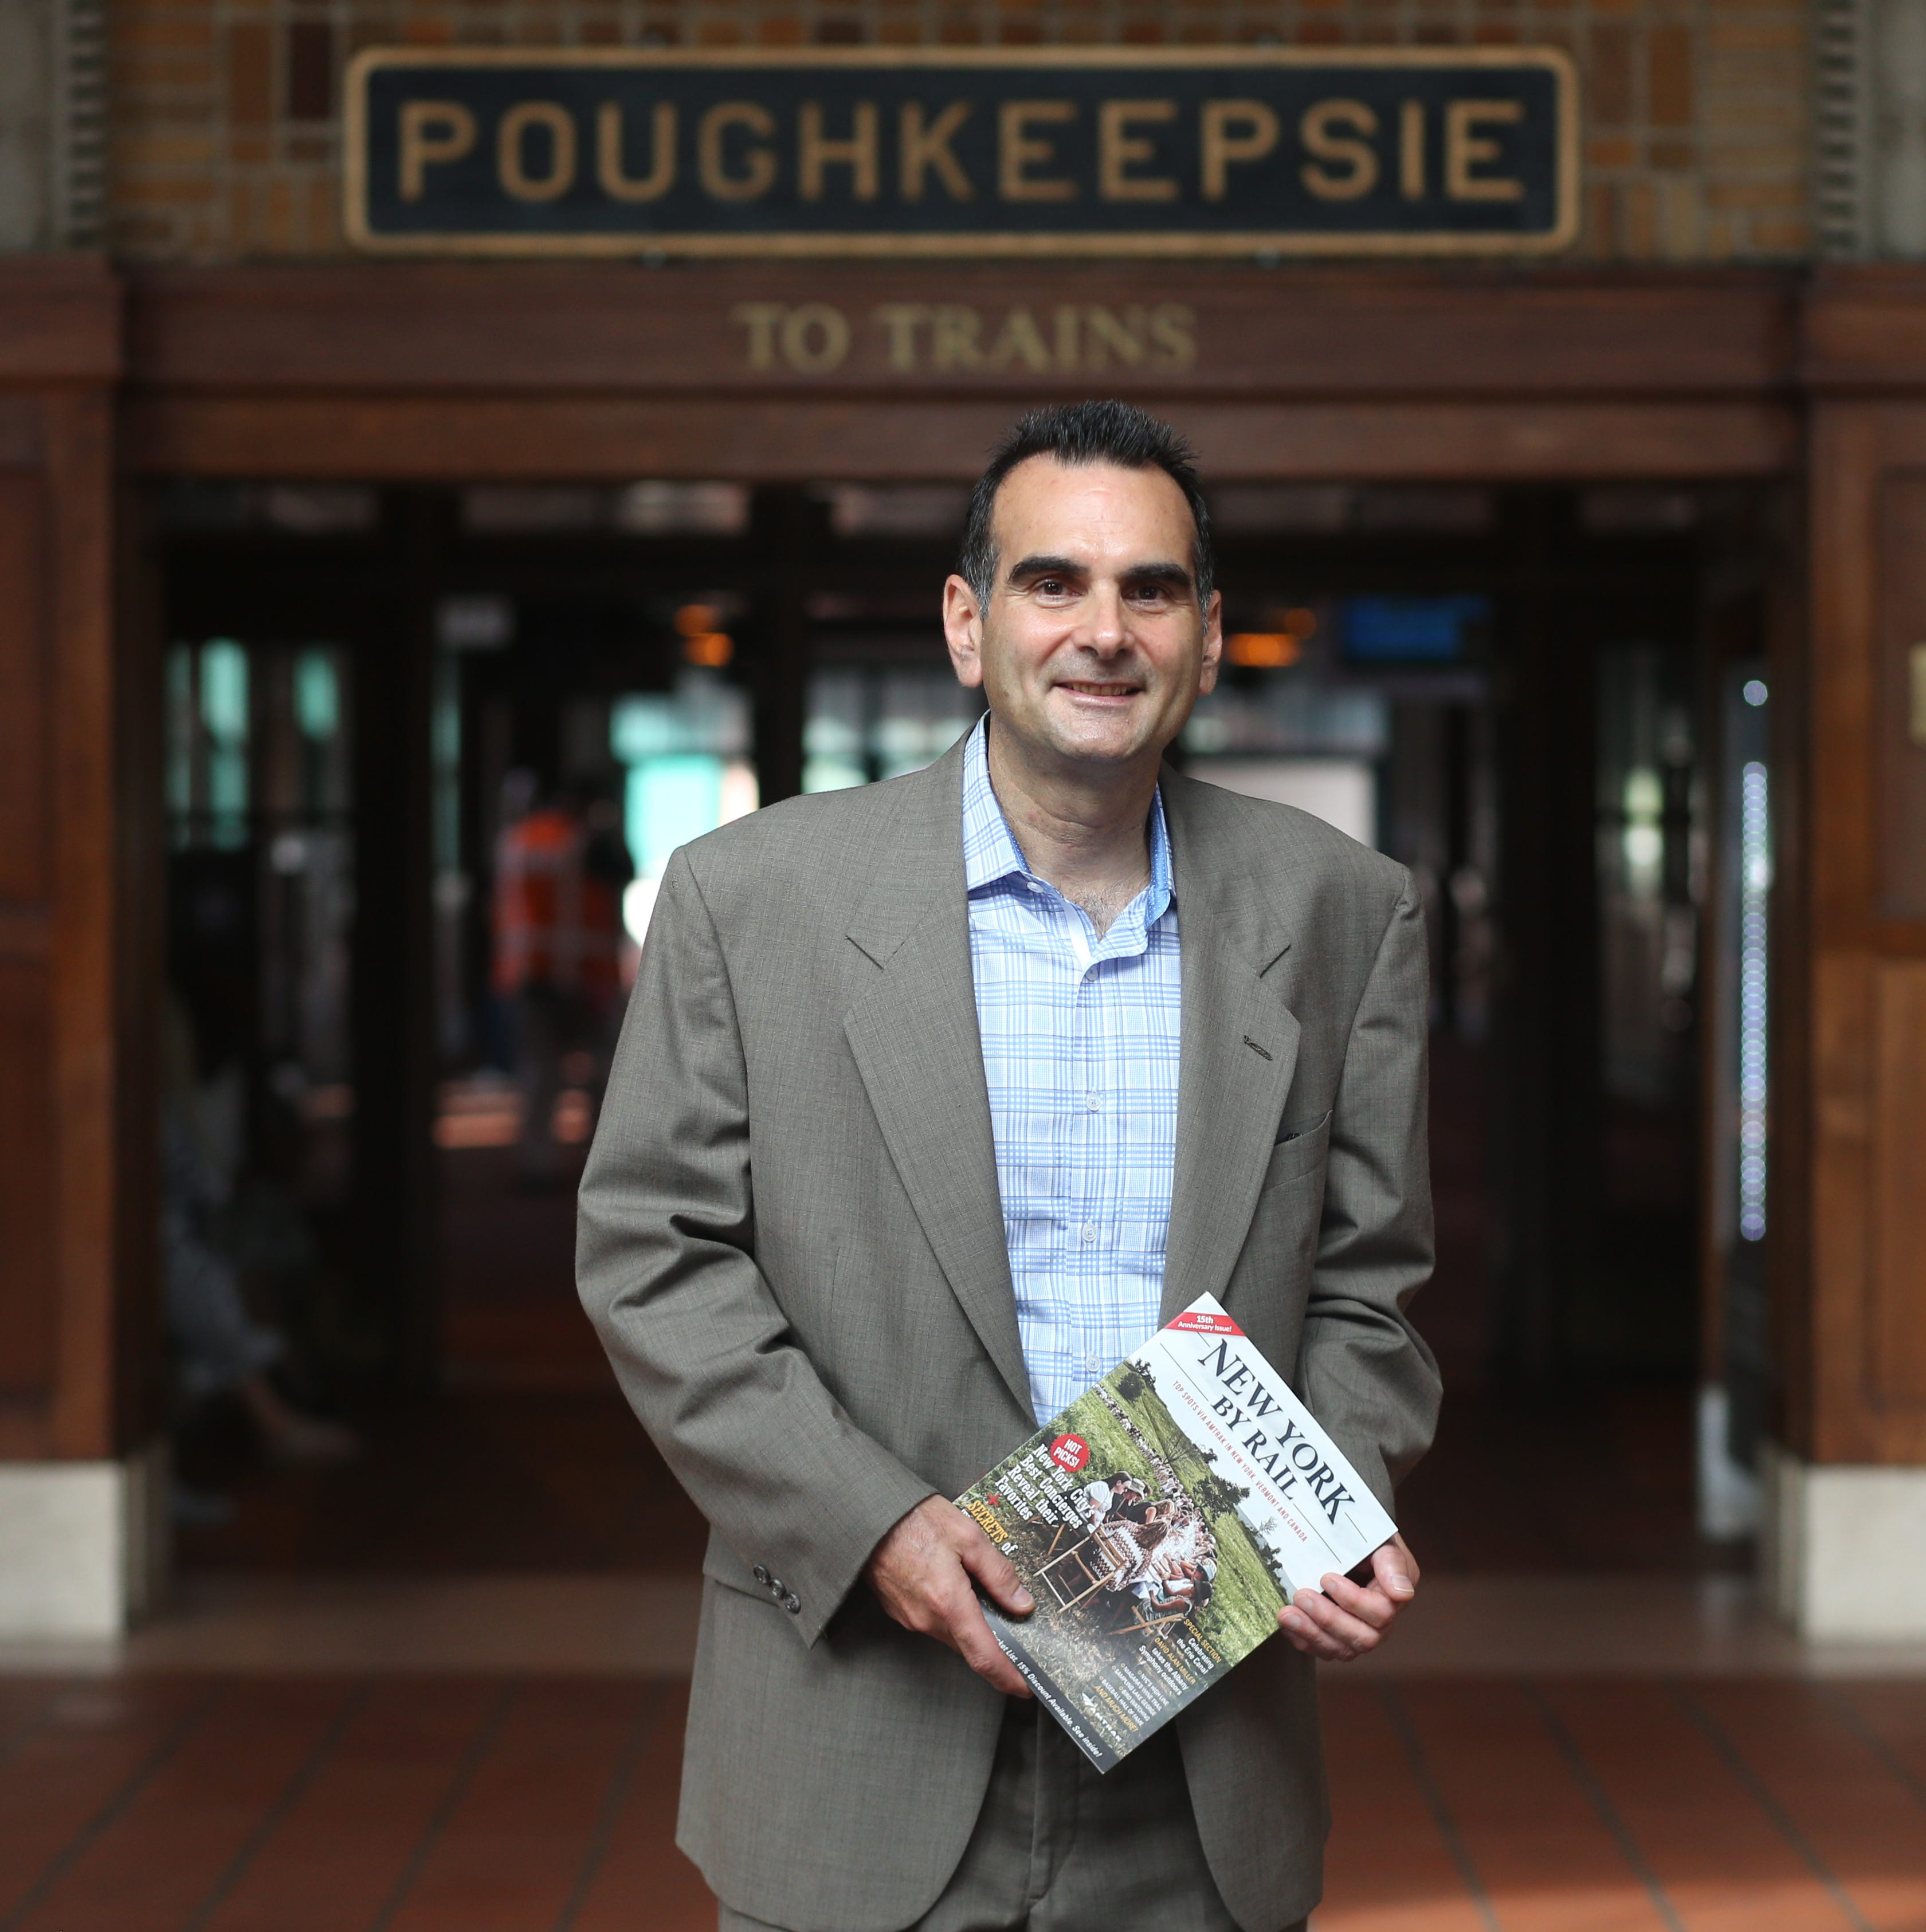 New York By Rail publisher fuels passion for traveling through print, digital content